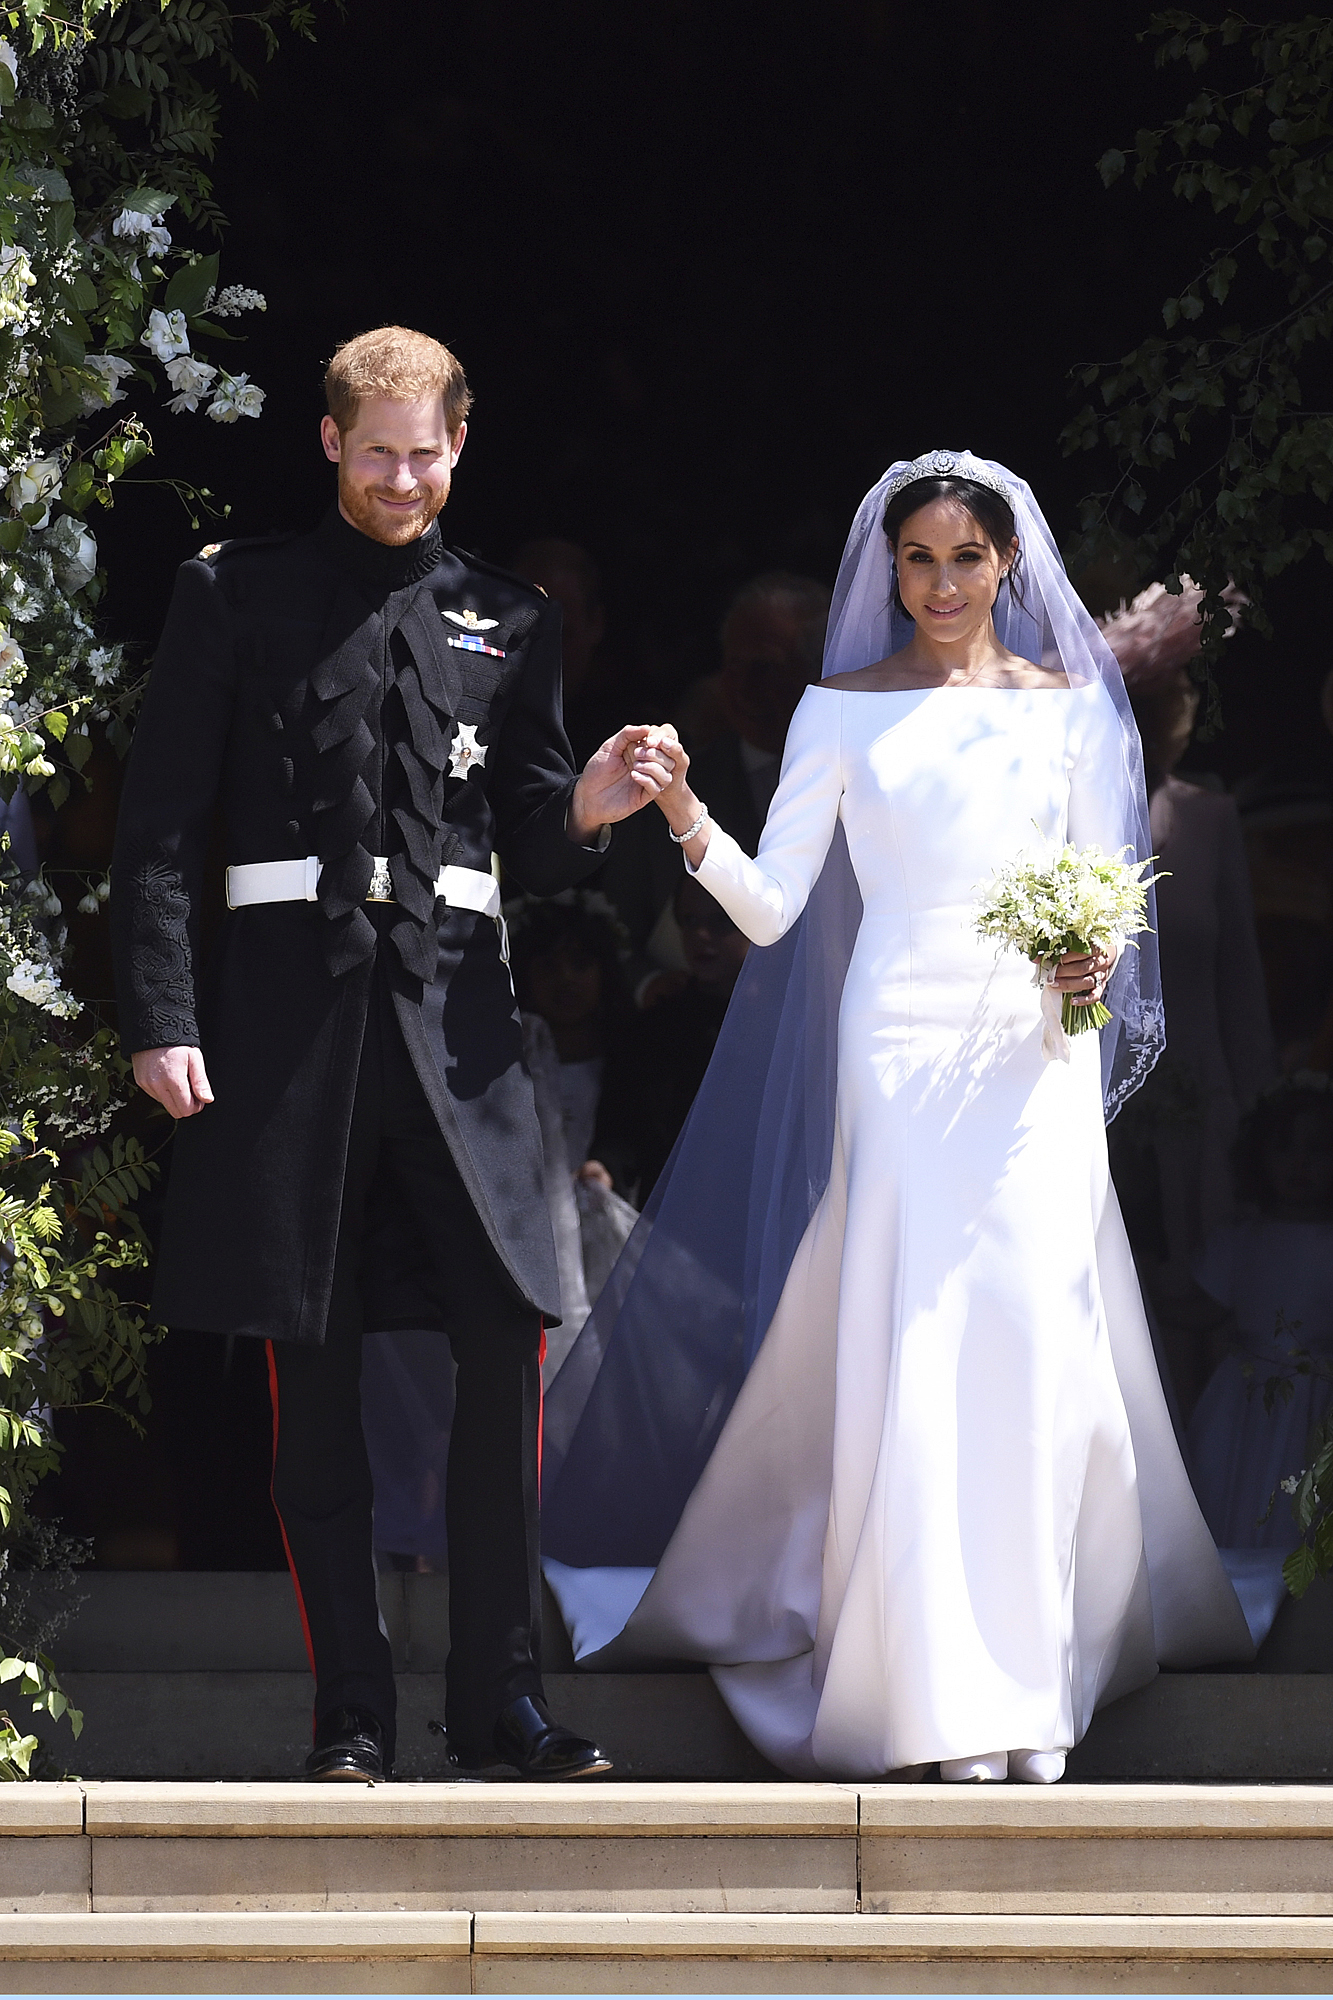 Happy Anniversary! Meghan Markle and Prince Harry Share Previously Unseen Wedding Photos